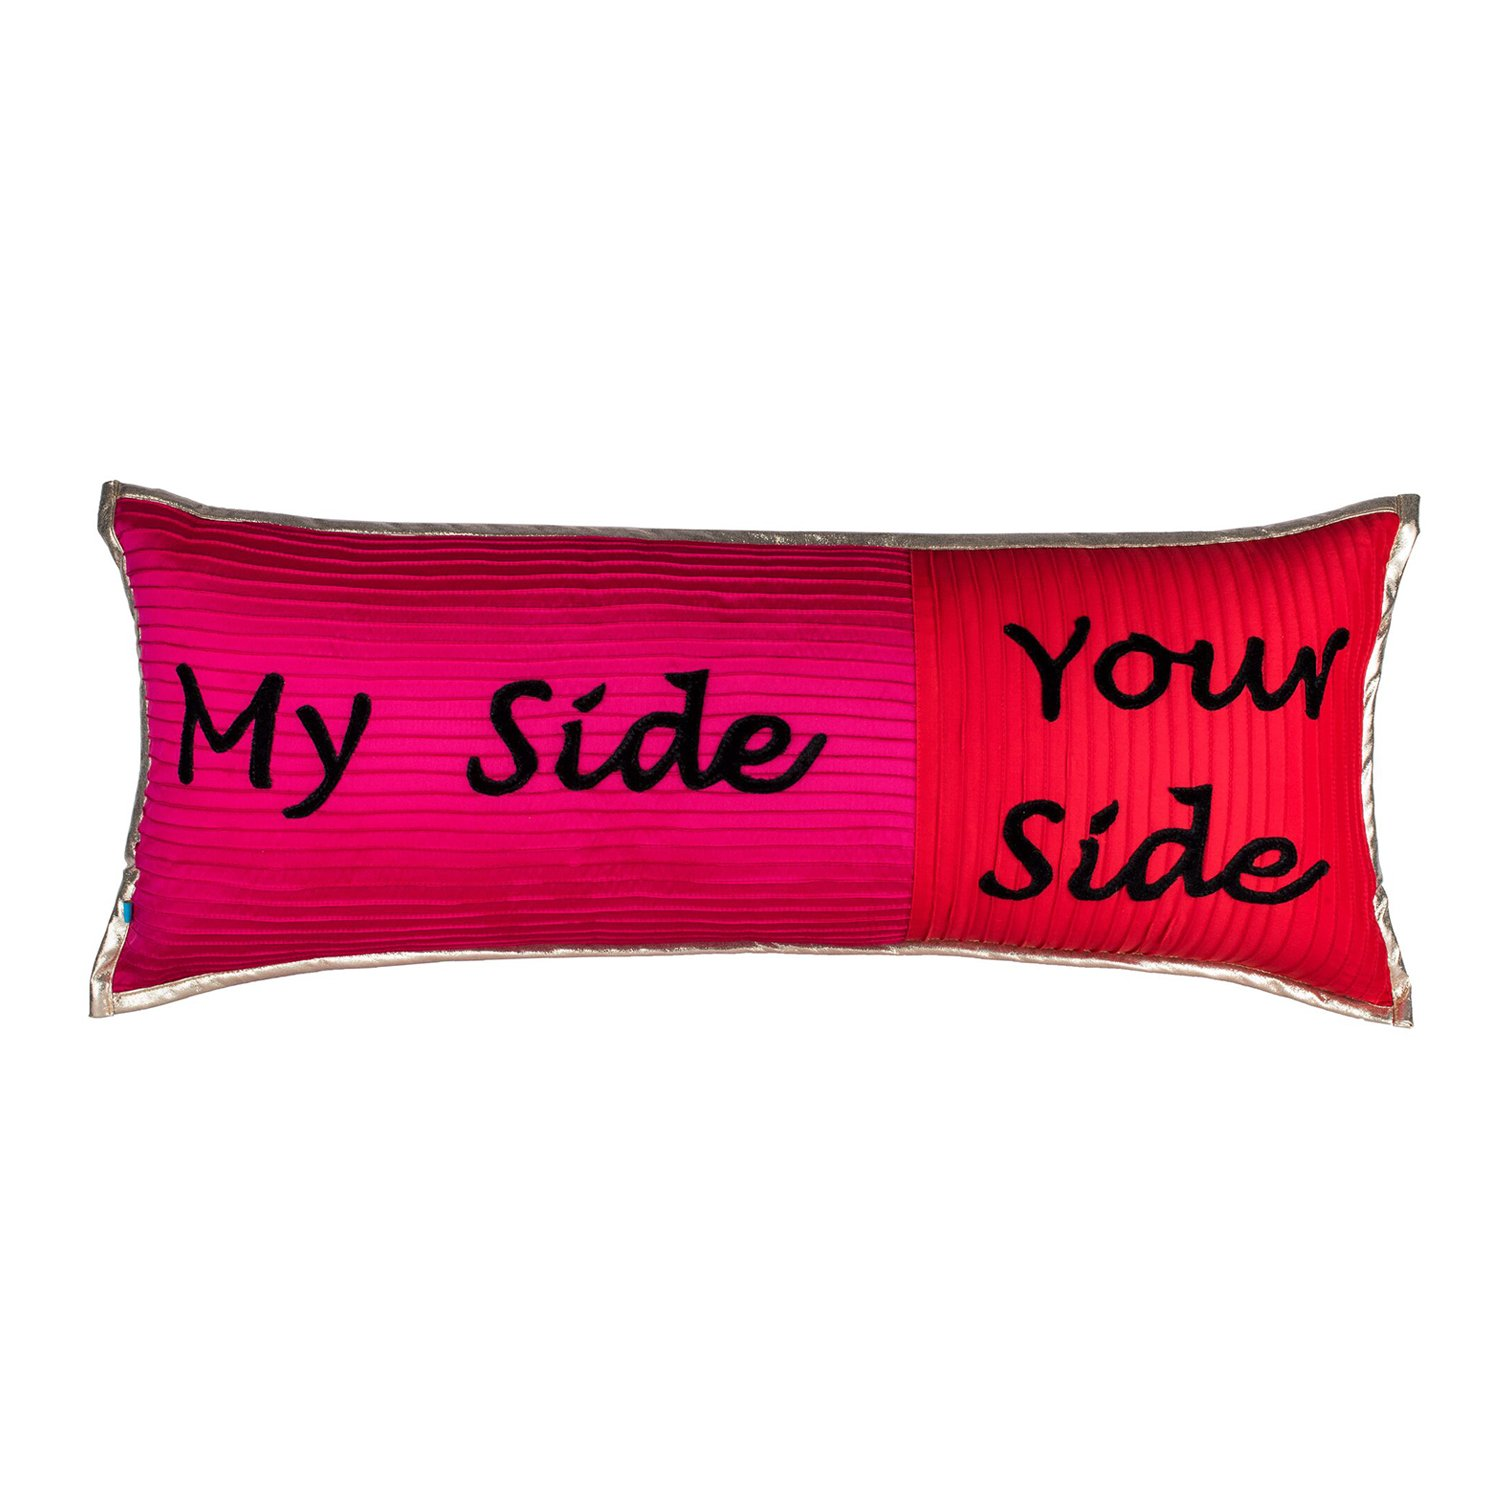 The Pink Champa Big Long Bolster Cute Quote Rectangle Decorative Accent Throw Pillow Cover for Home D/écor Red Pink